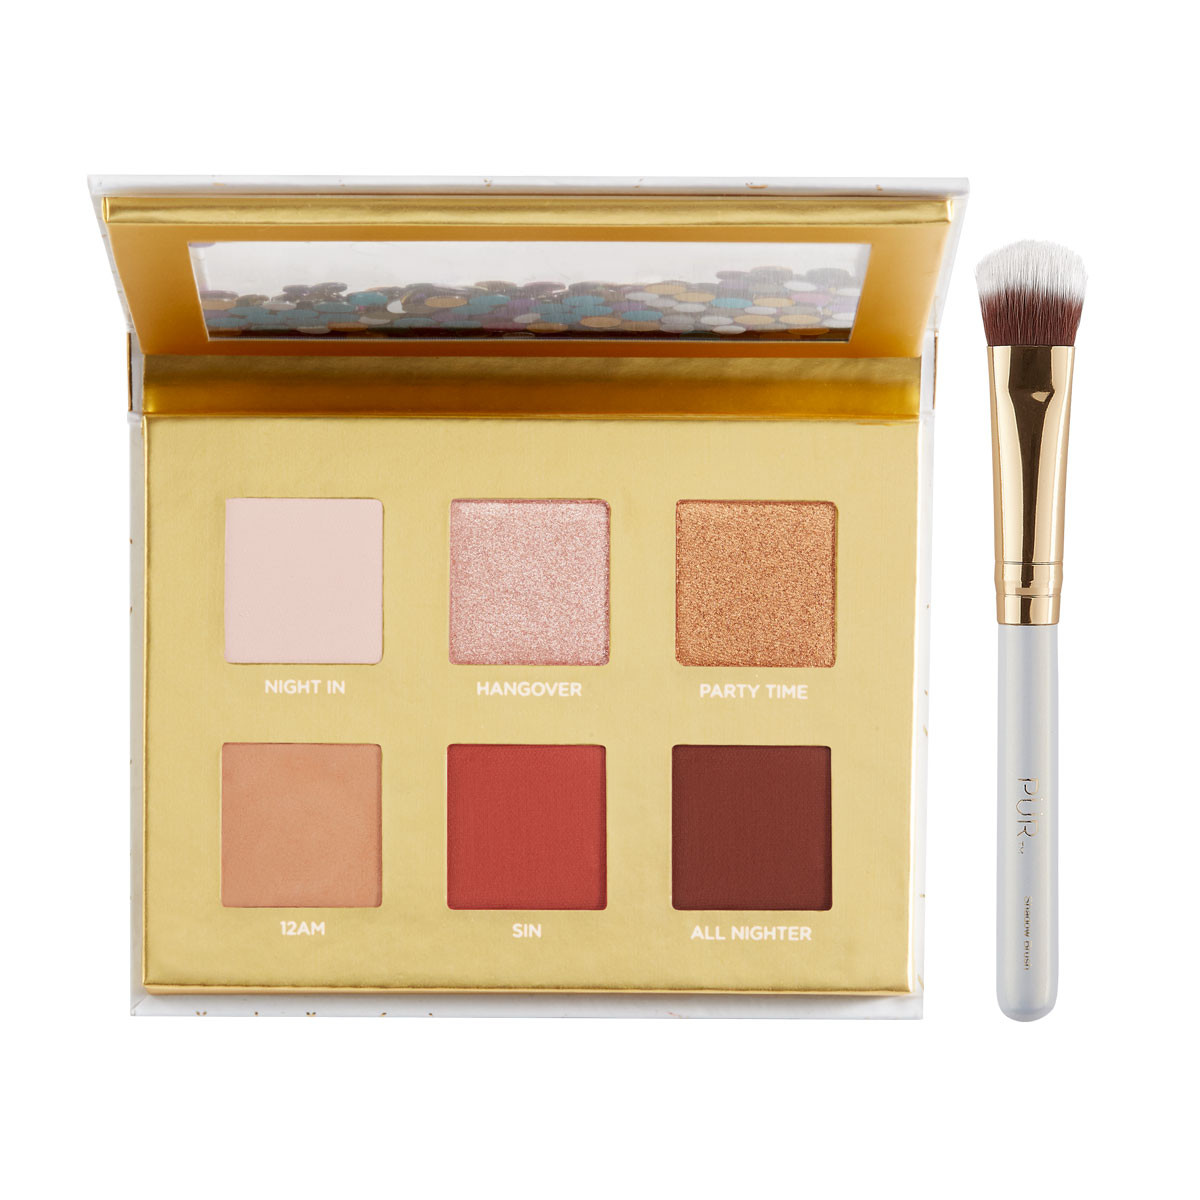 Let The Good Times Roll Travel Eyeshadow Palette + Shadow Brush